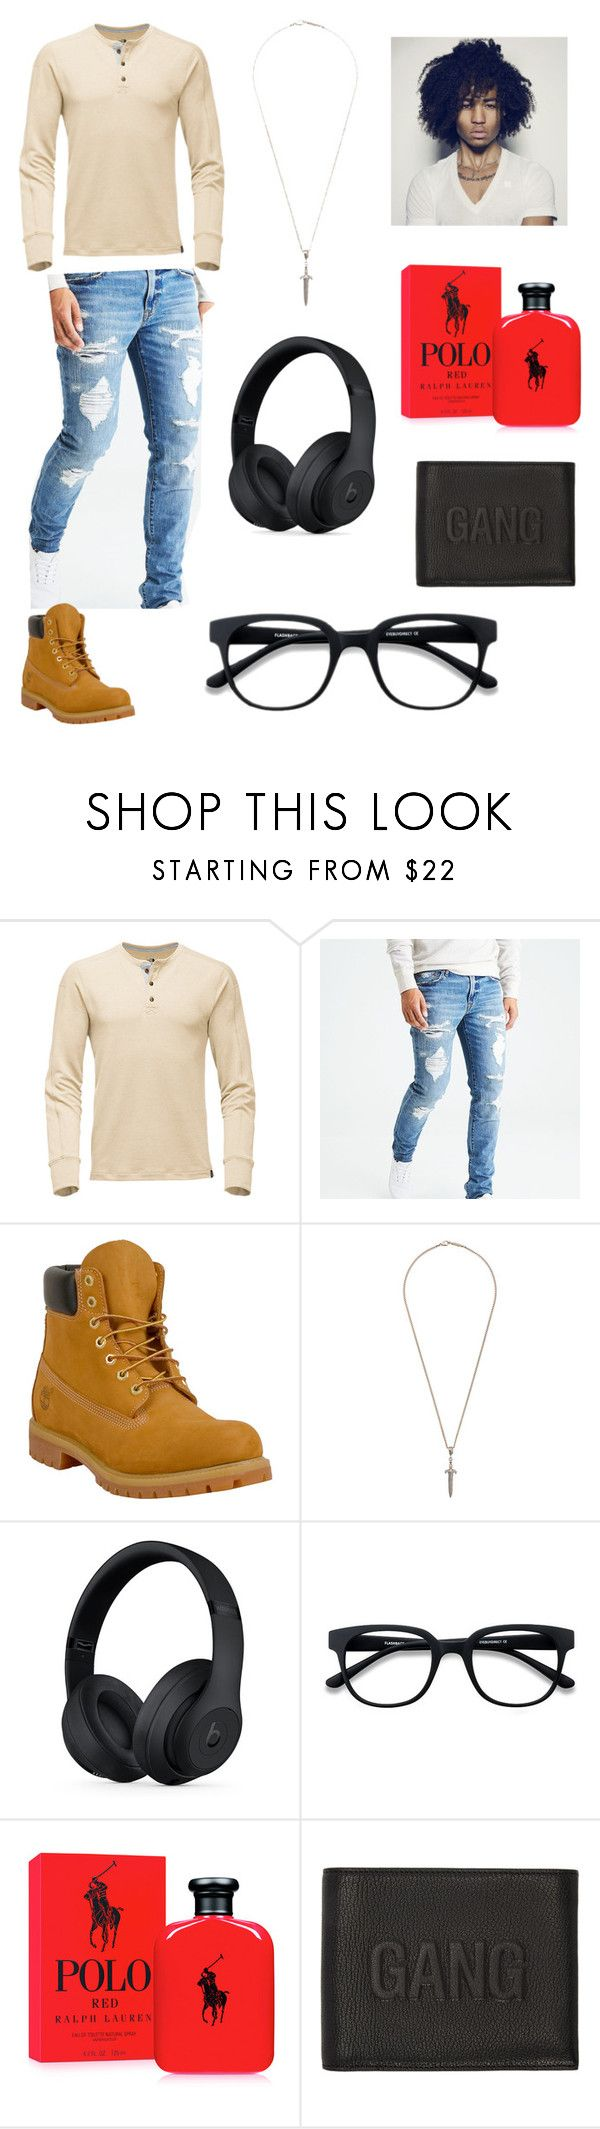 """Random"" by ofrandomness on Polyvore featuring American Eagle Outfitters, Timberland, Roman Paul, Beats by Dr. Dre, EyeBuyDirect.com, Ralph Lauren, Neil Barrett, men's fashion and menswear"